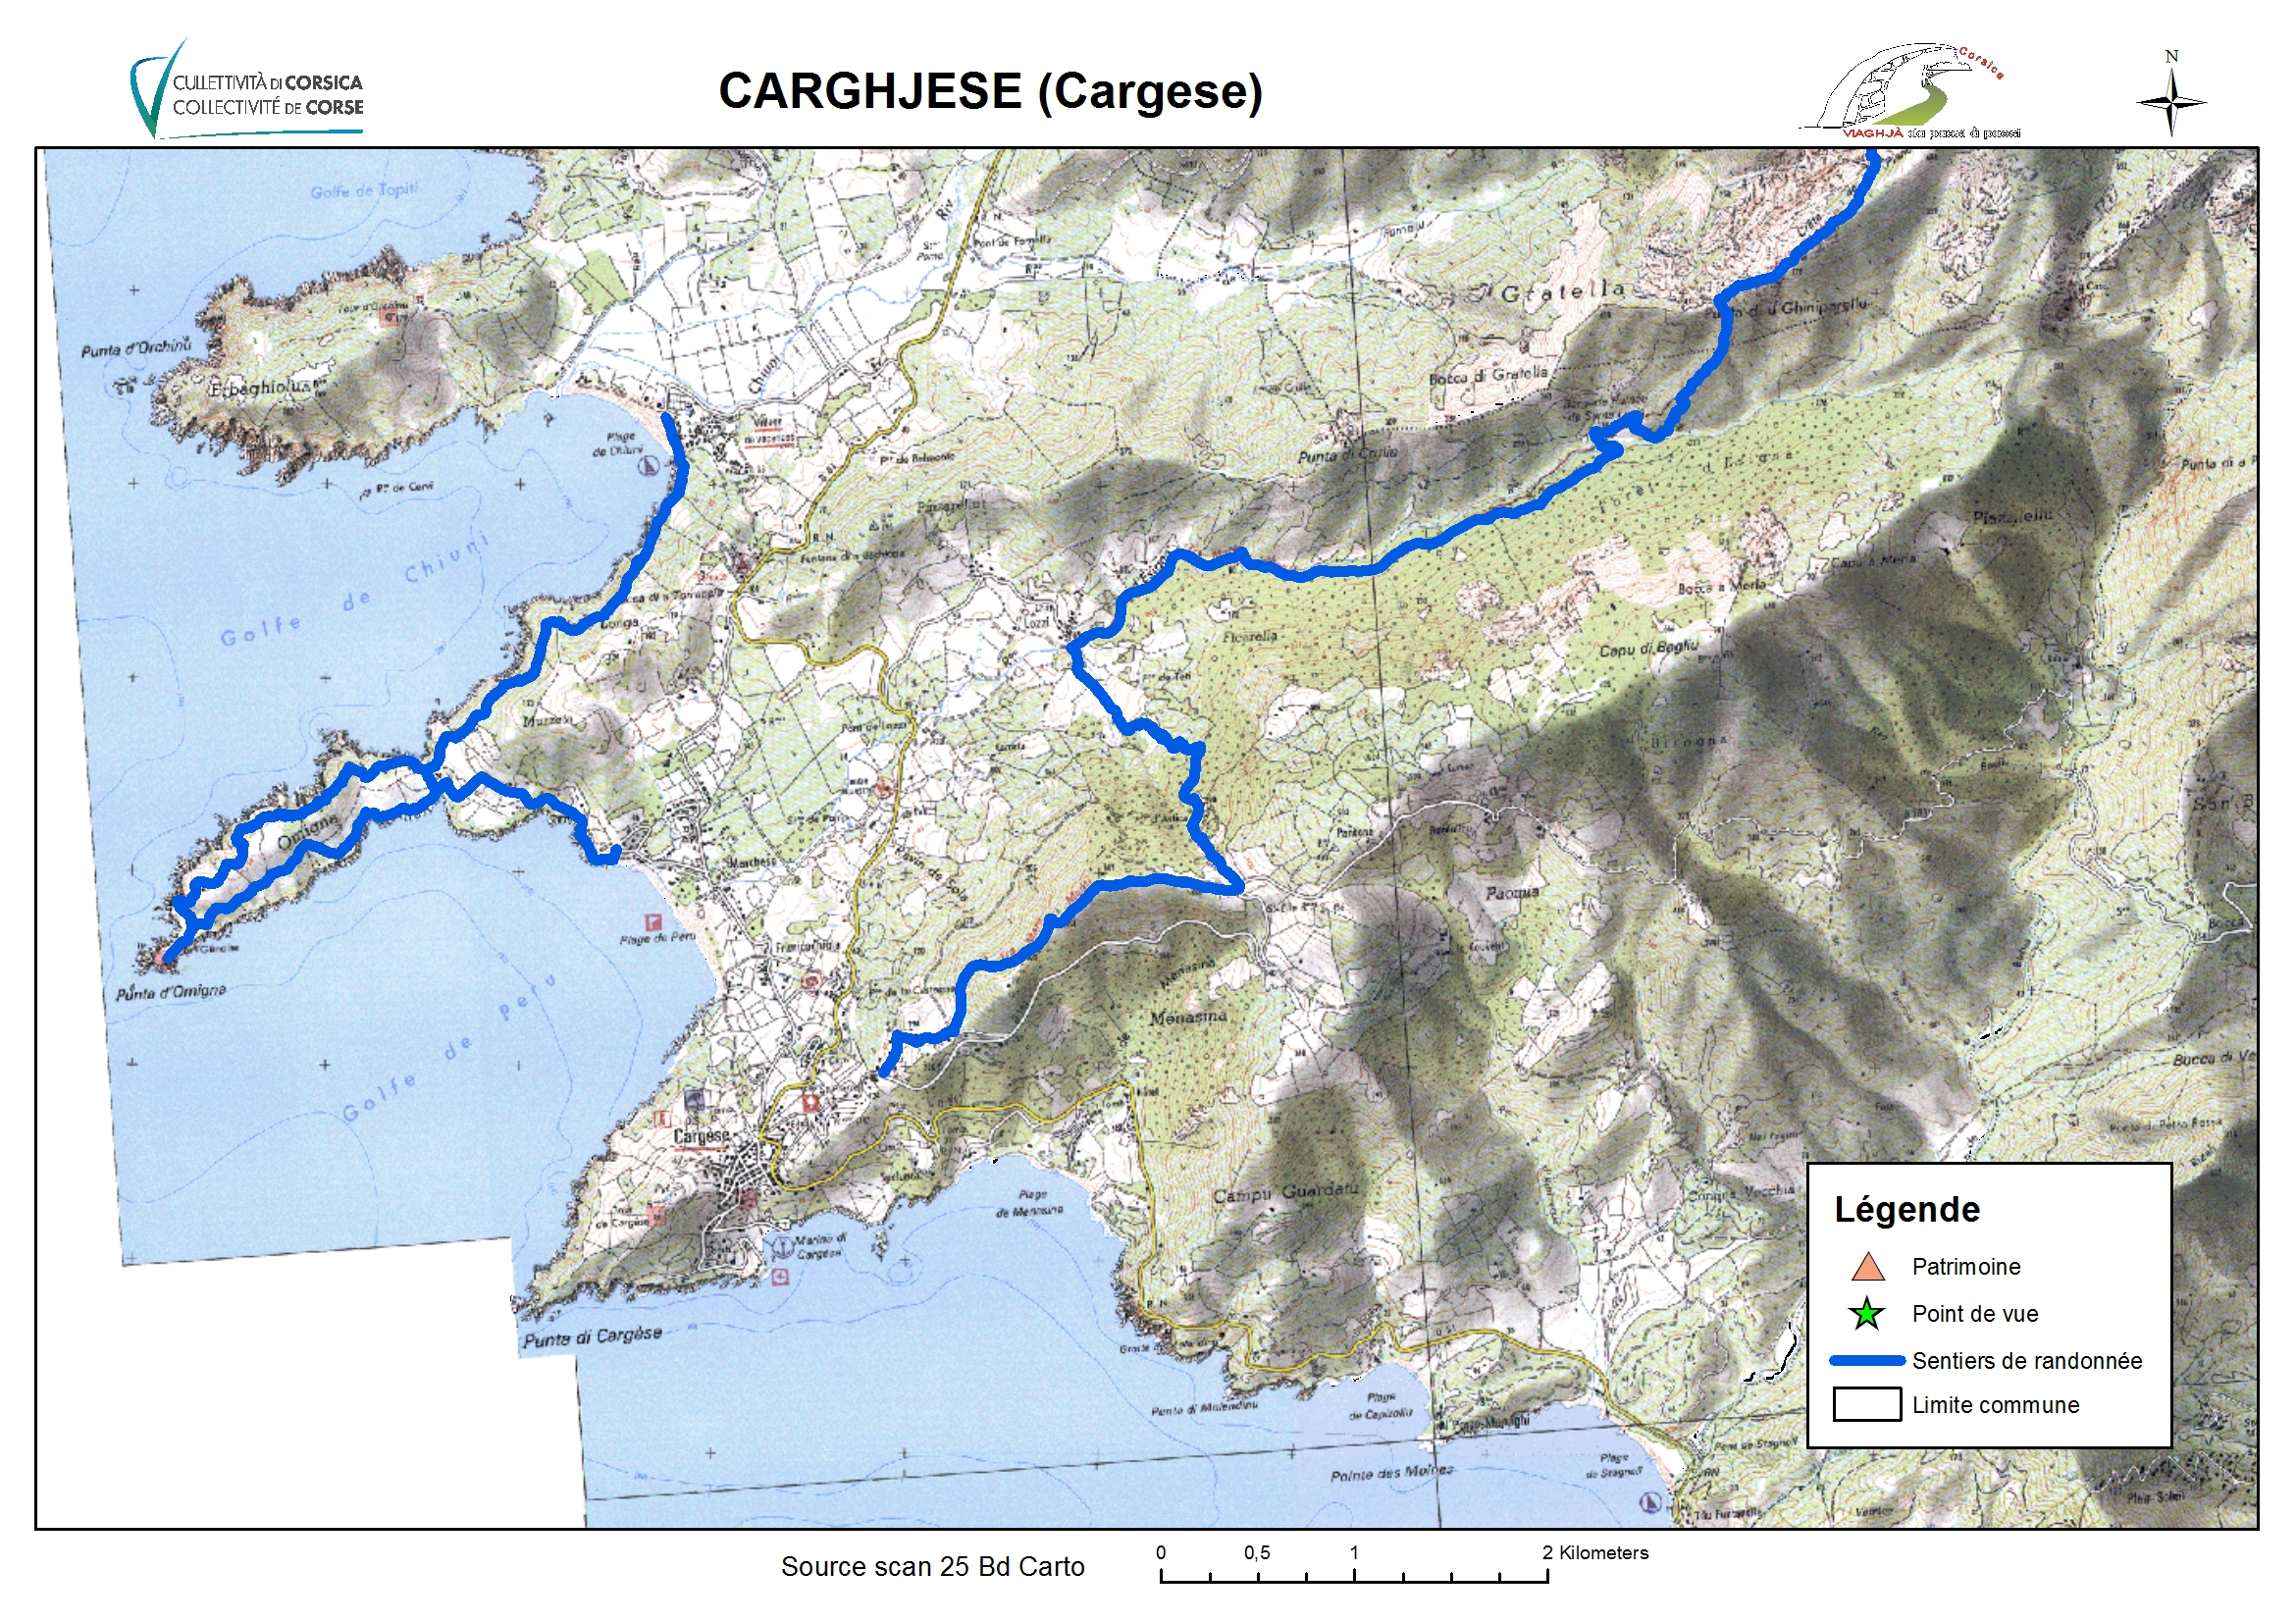 Cargese (Carghjese)